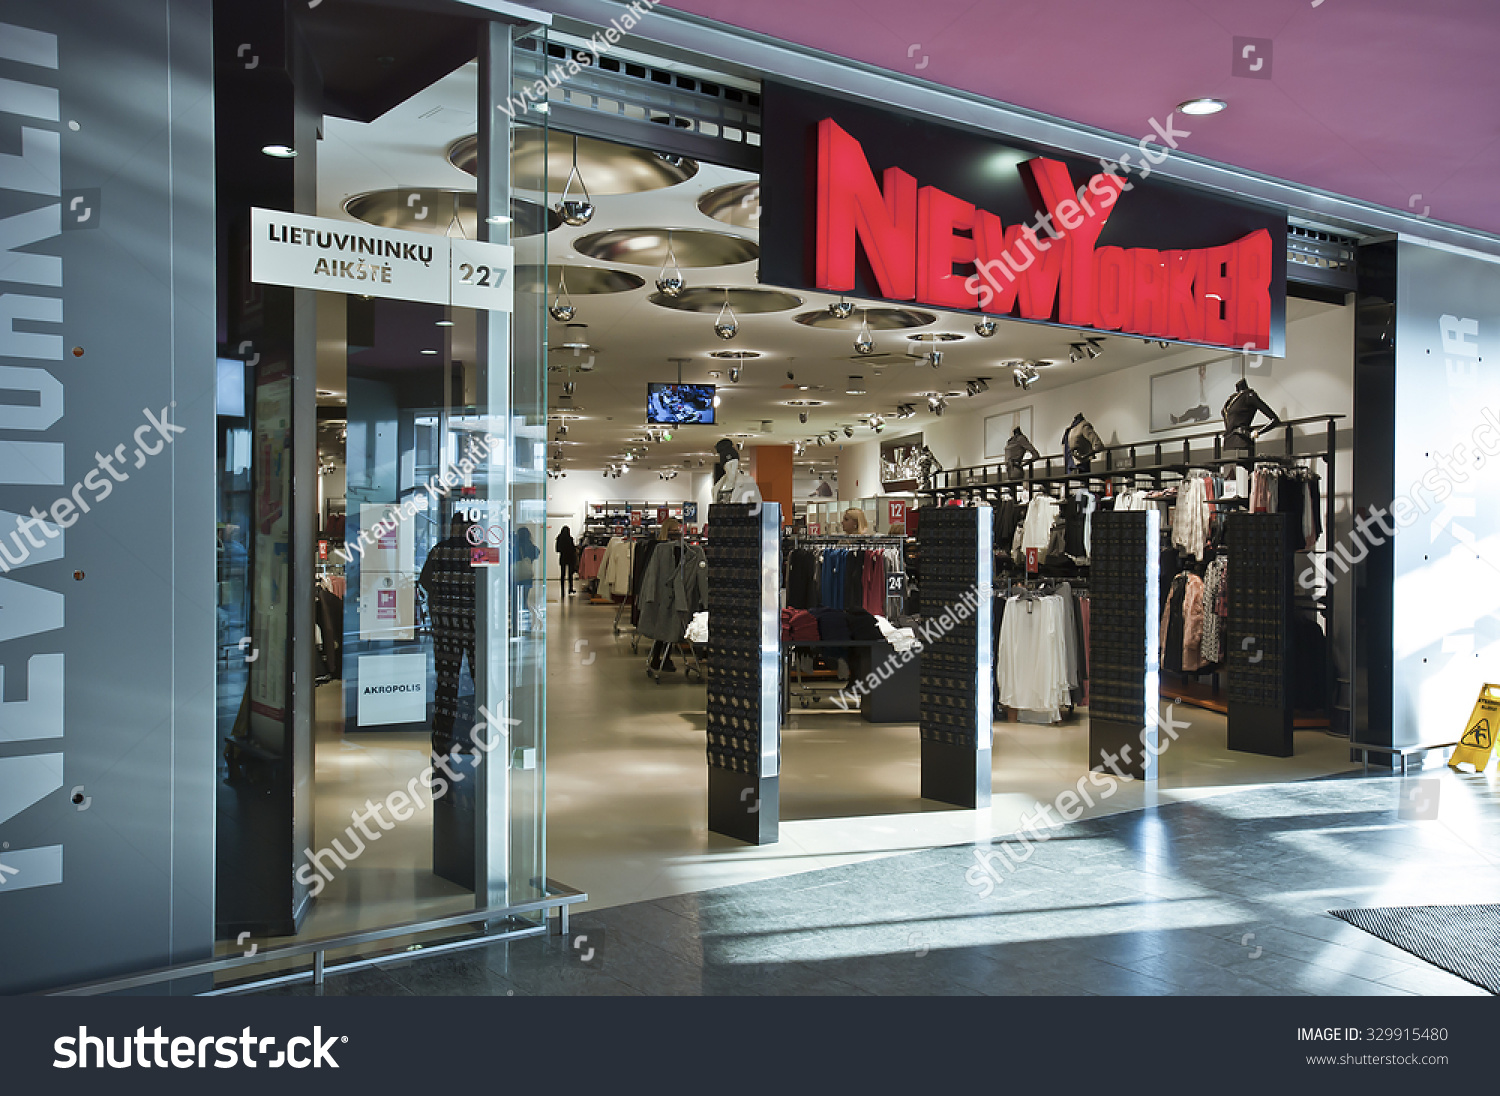 Braunschweig Outlet Klaipedalithuaniaoct 19 Nike Store On October 19 Stock Photo Edit